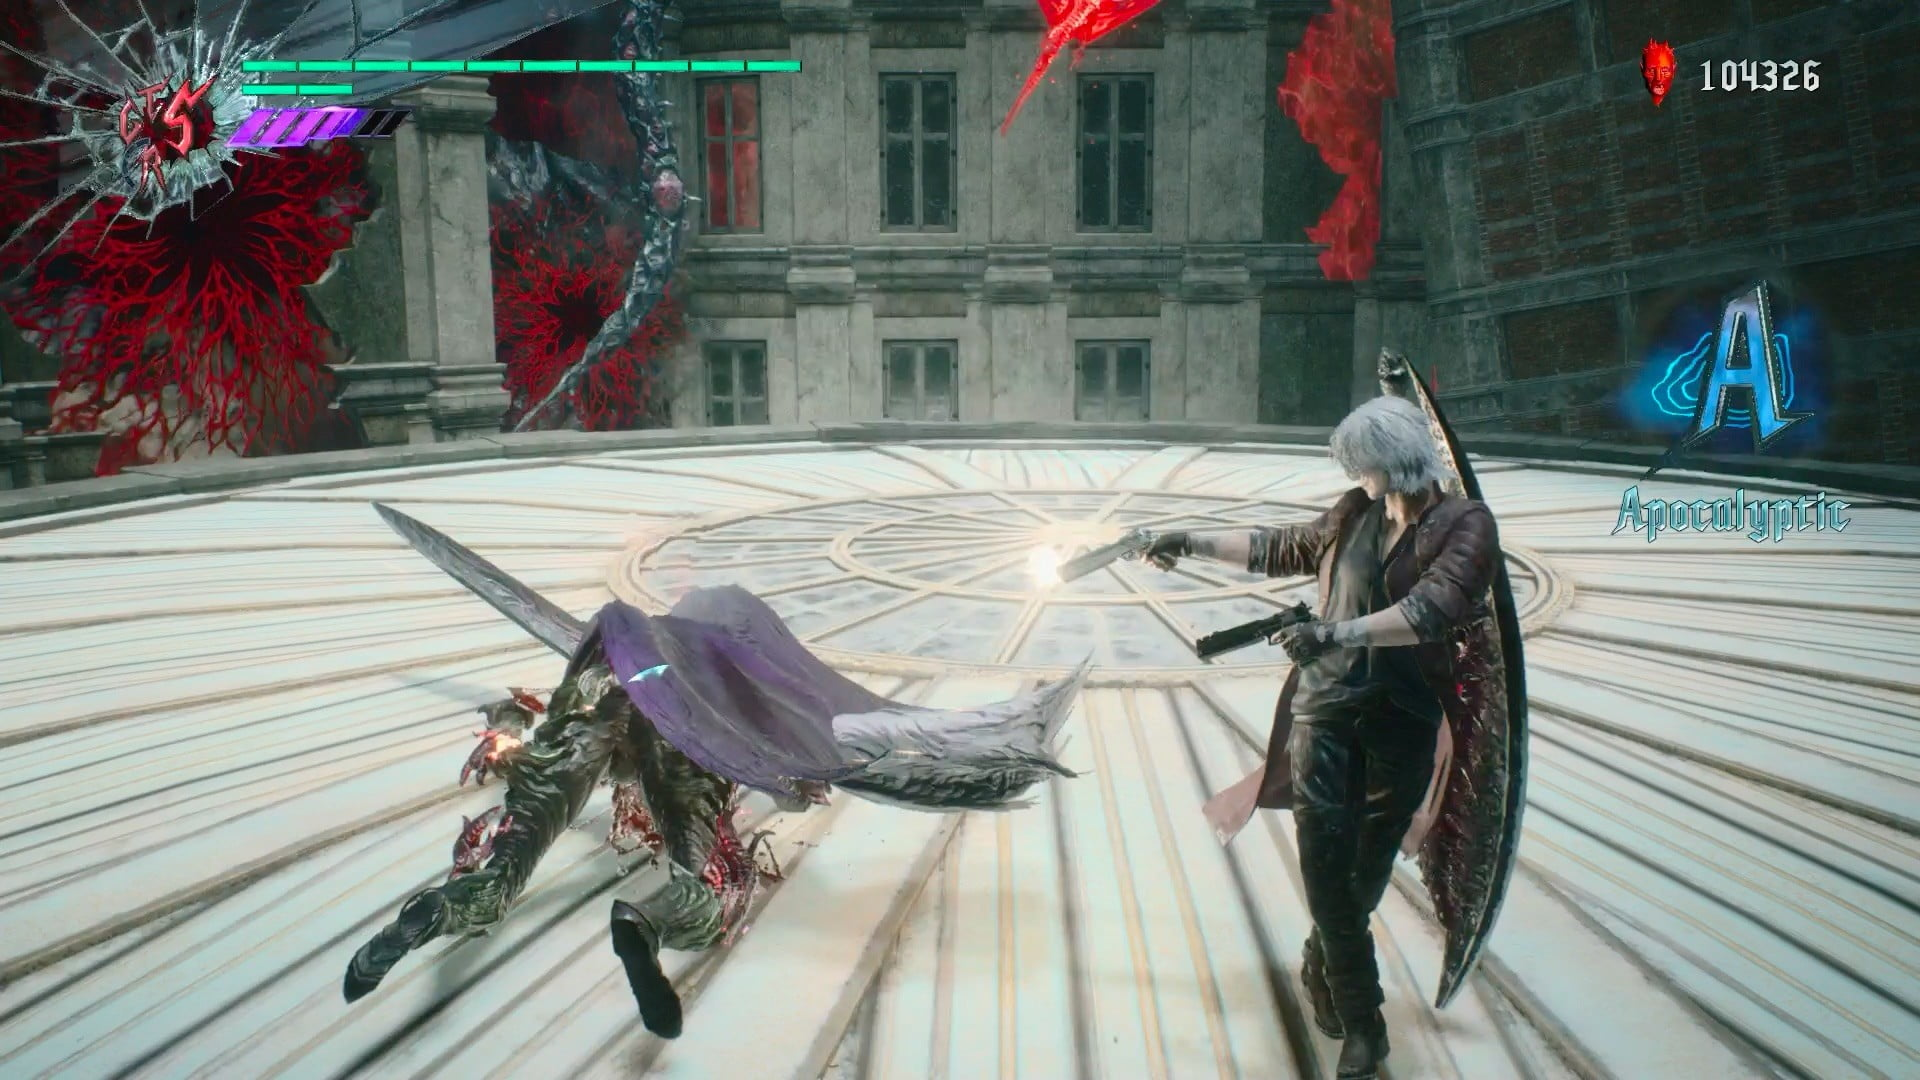 Dmc 5 Is A Reminder That Too Many Open World Games Wasted My Time